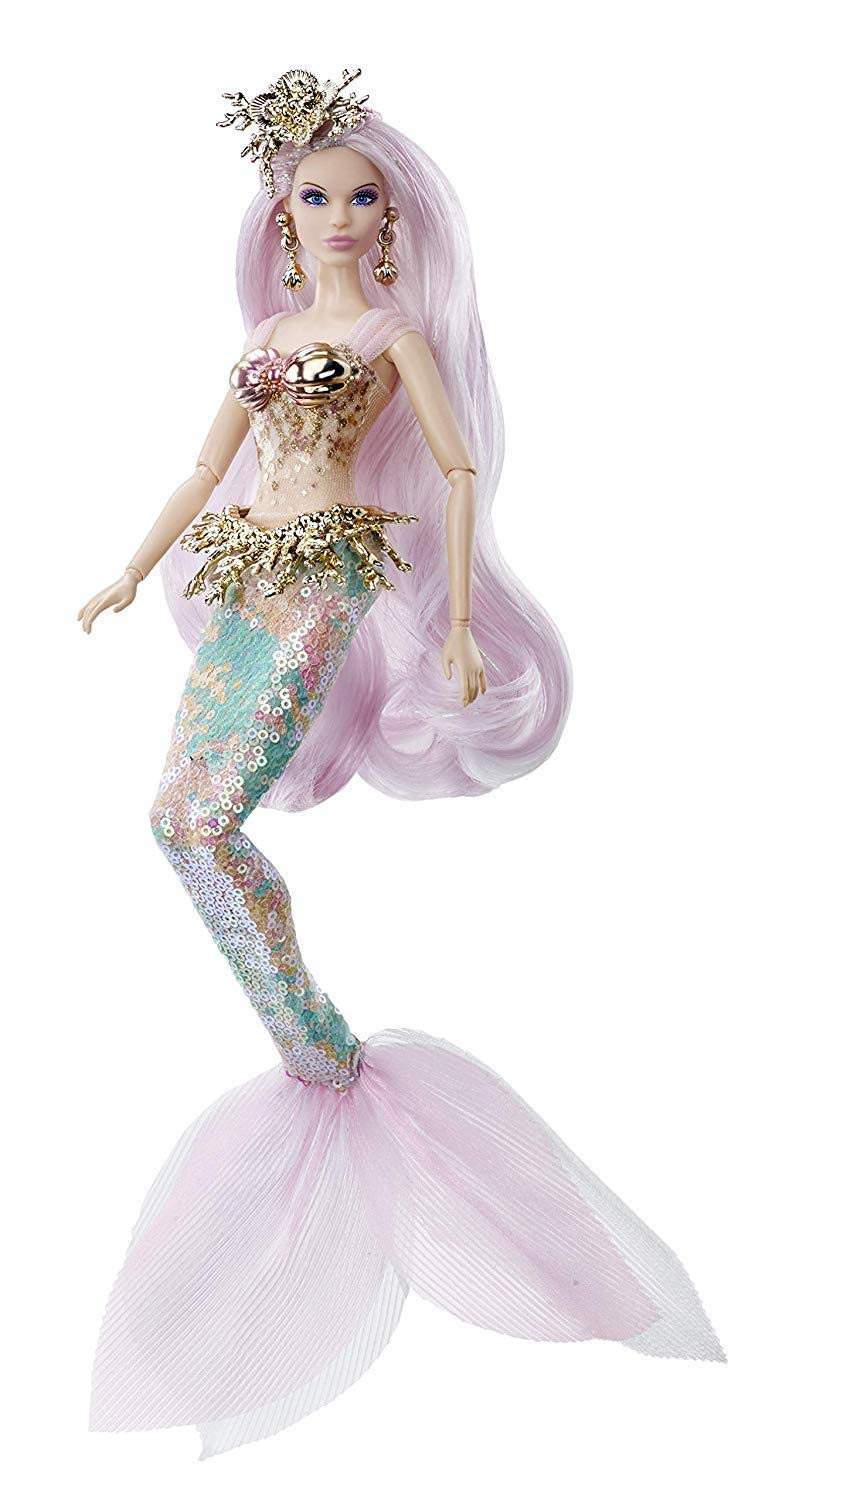 Barbie the Dragon Empress collector doll is out. Stock images and links